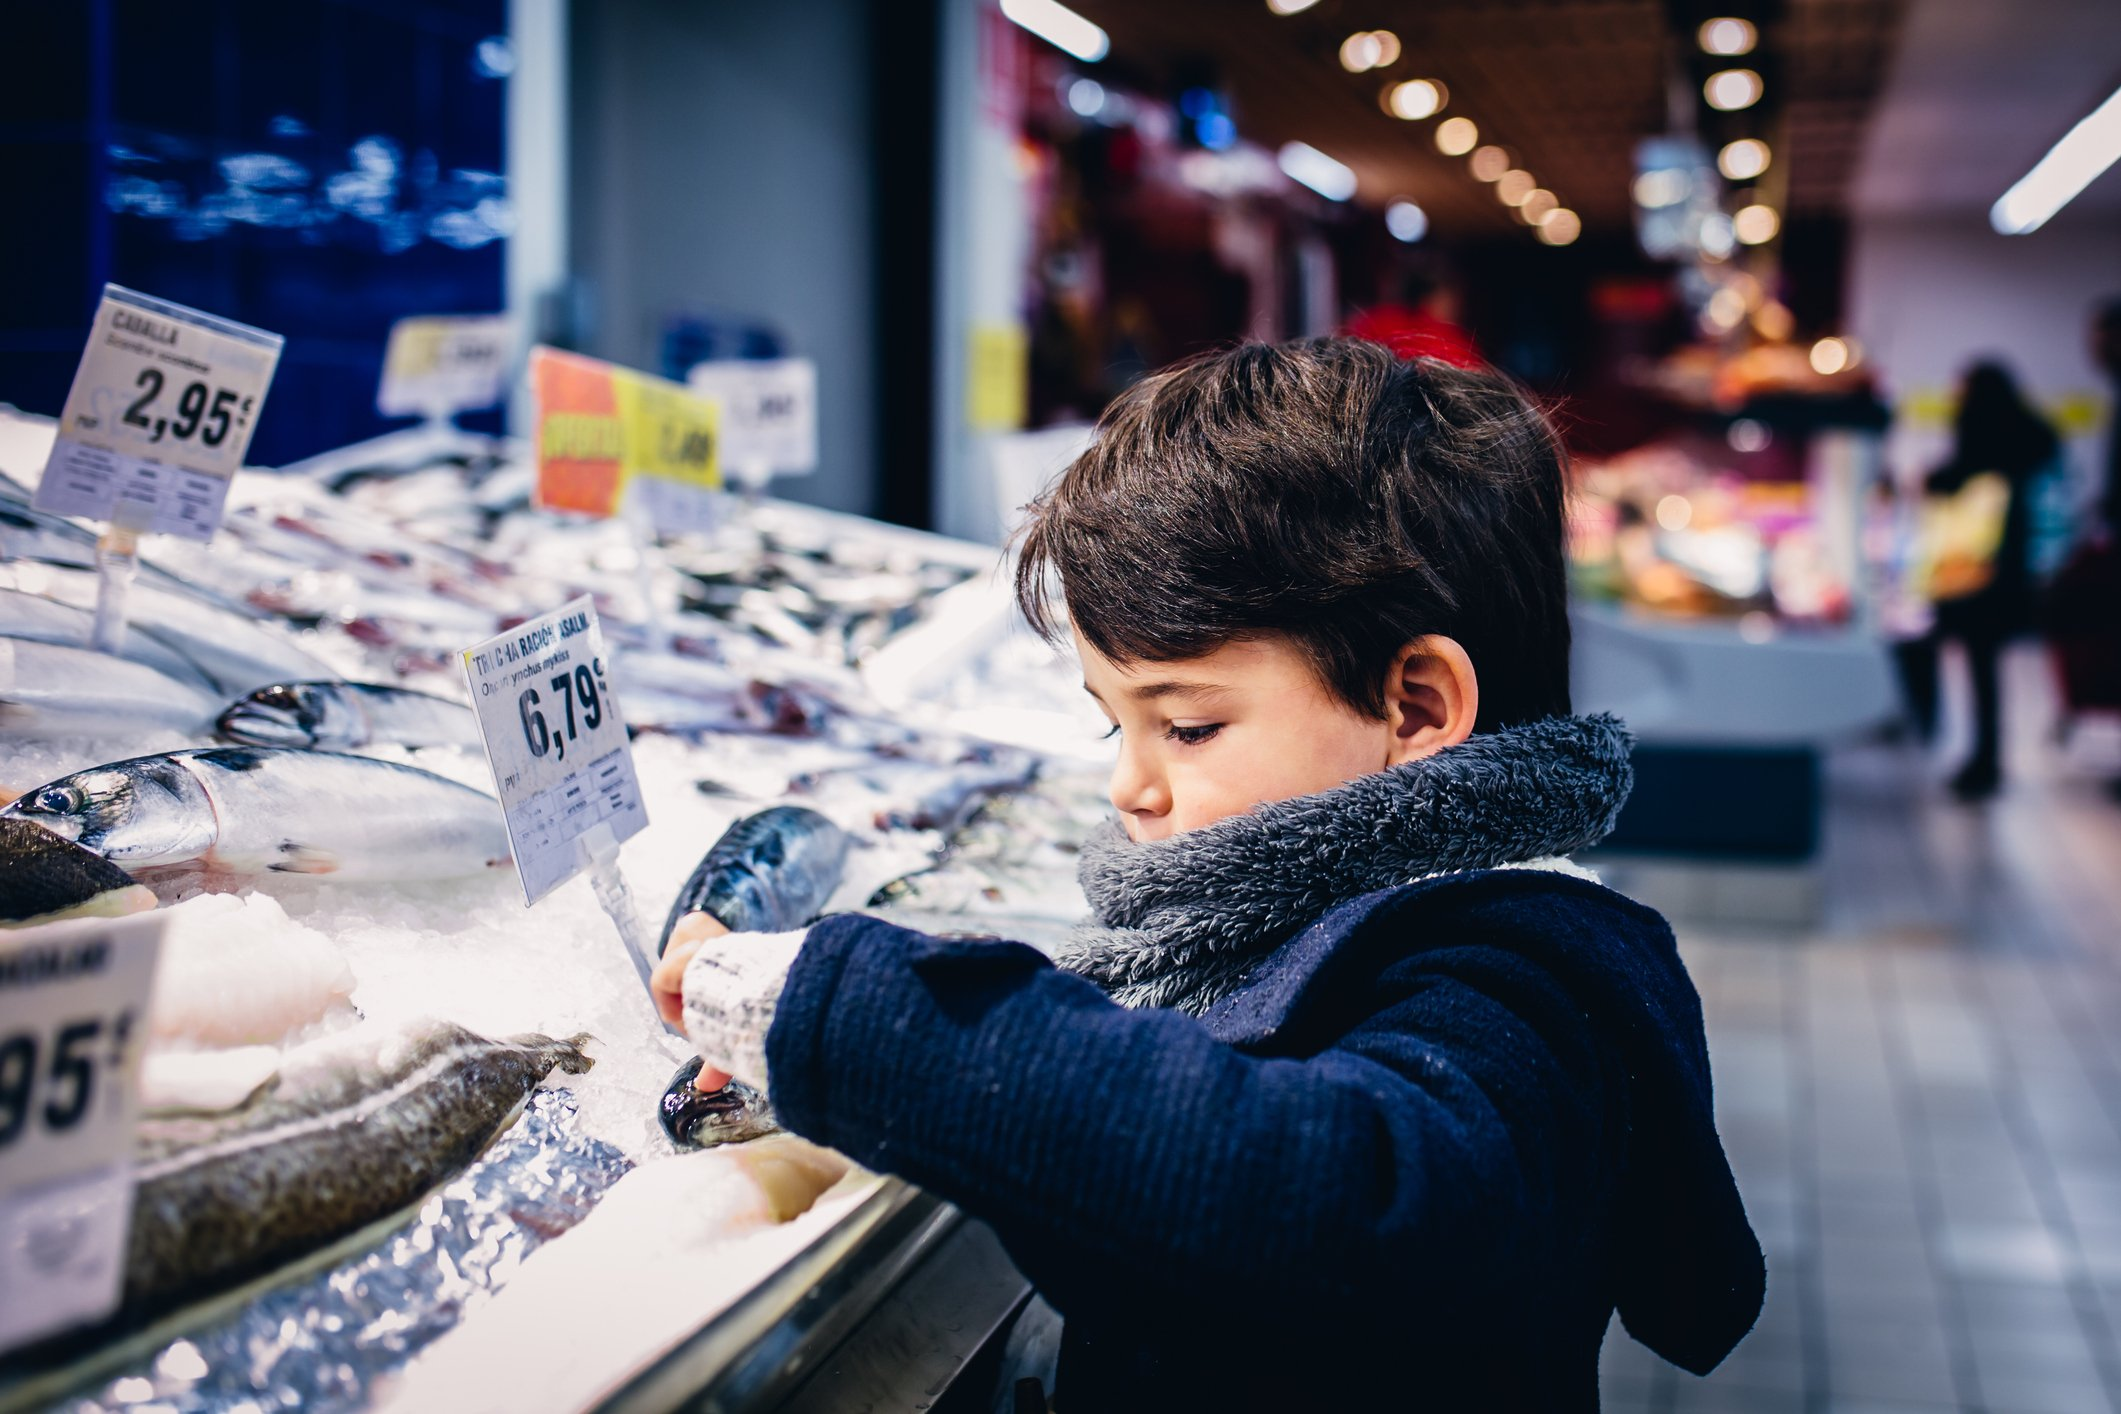 Boy observing goods in store  Photo: Getty Images